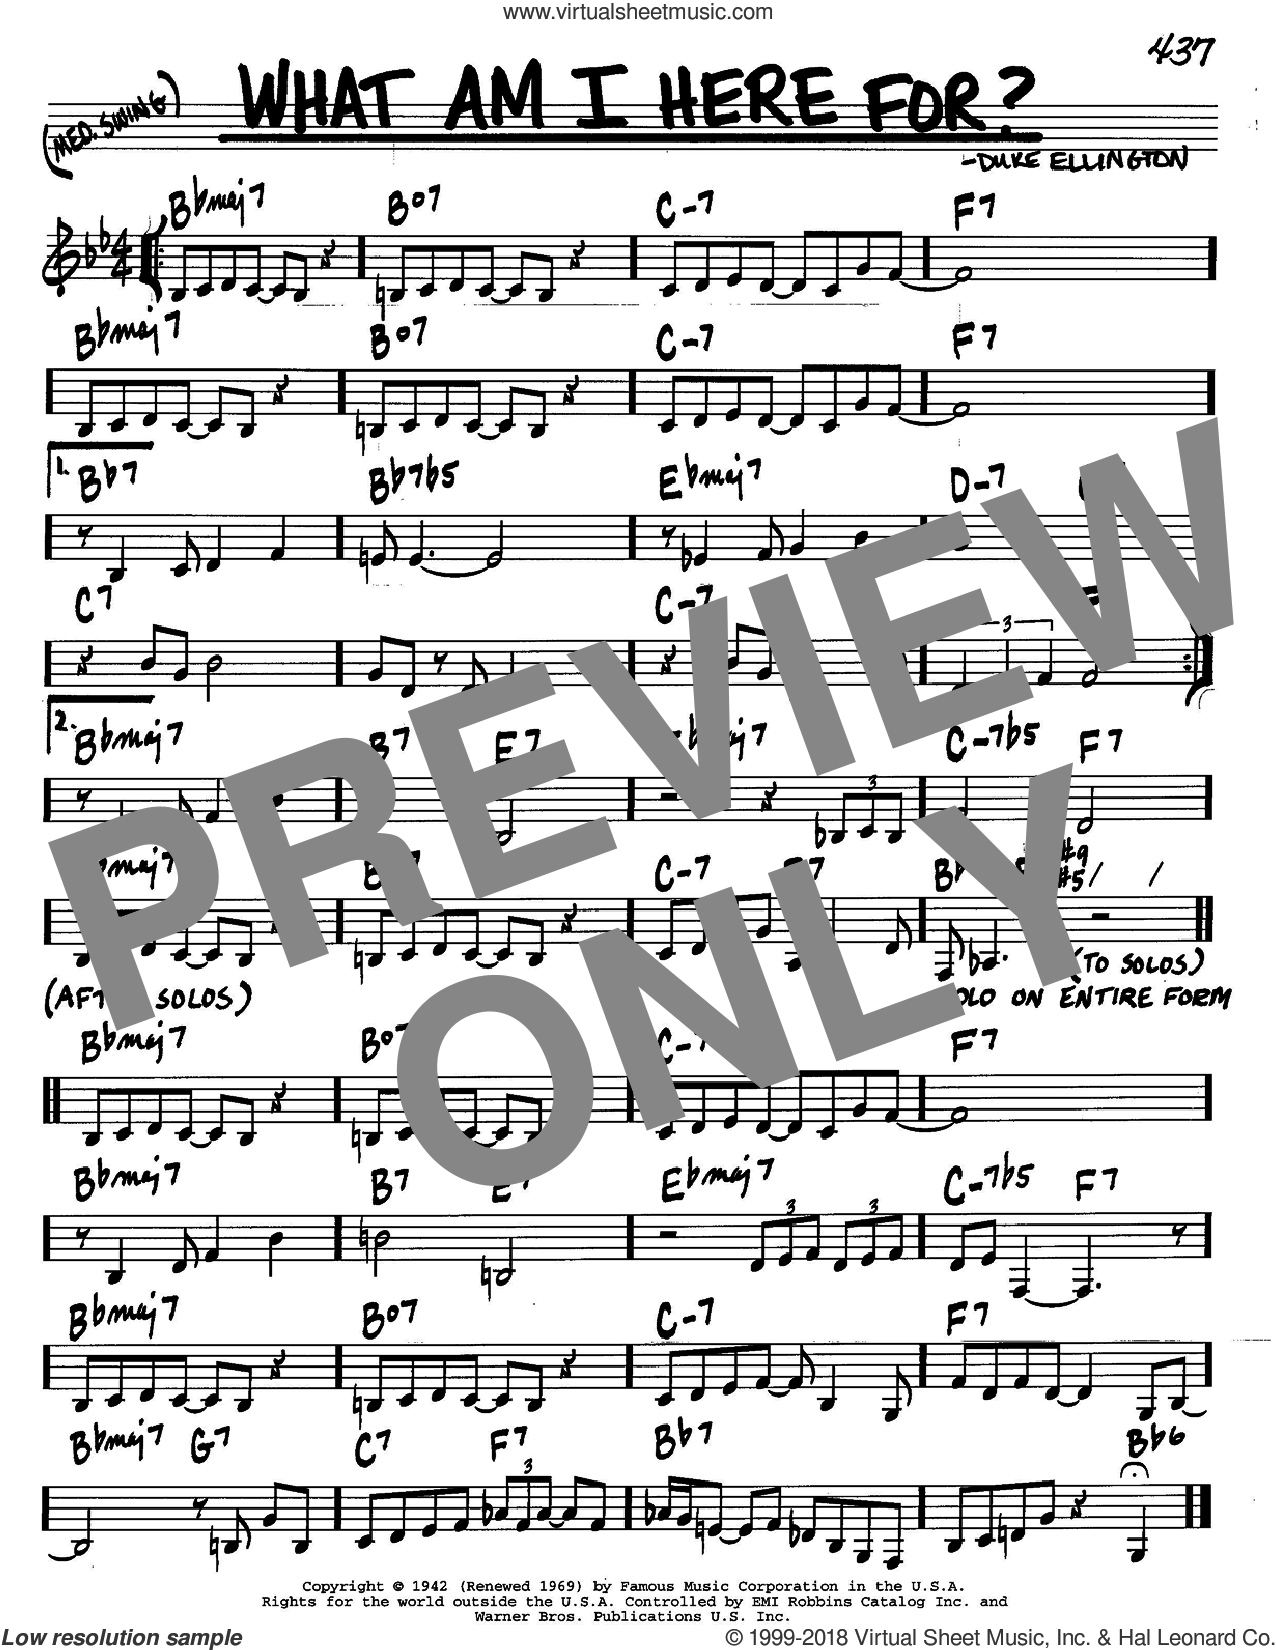 What Am I Here For? sheet music for voice and other instruments (in C) by Duke Ellington, intermediate